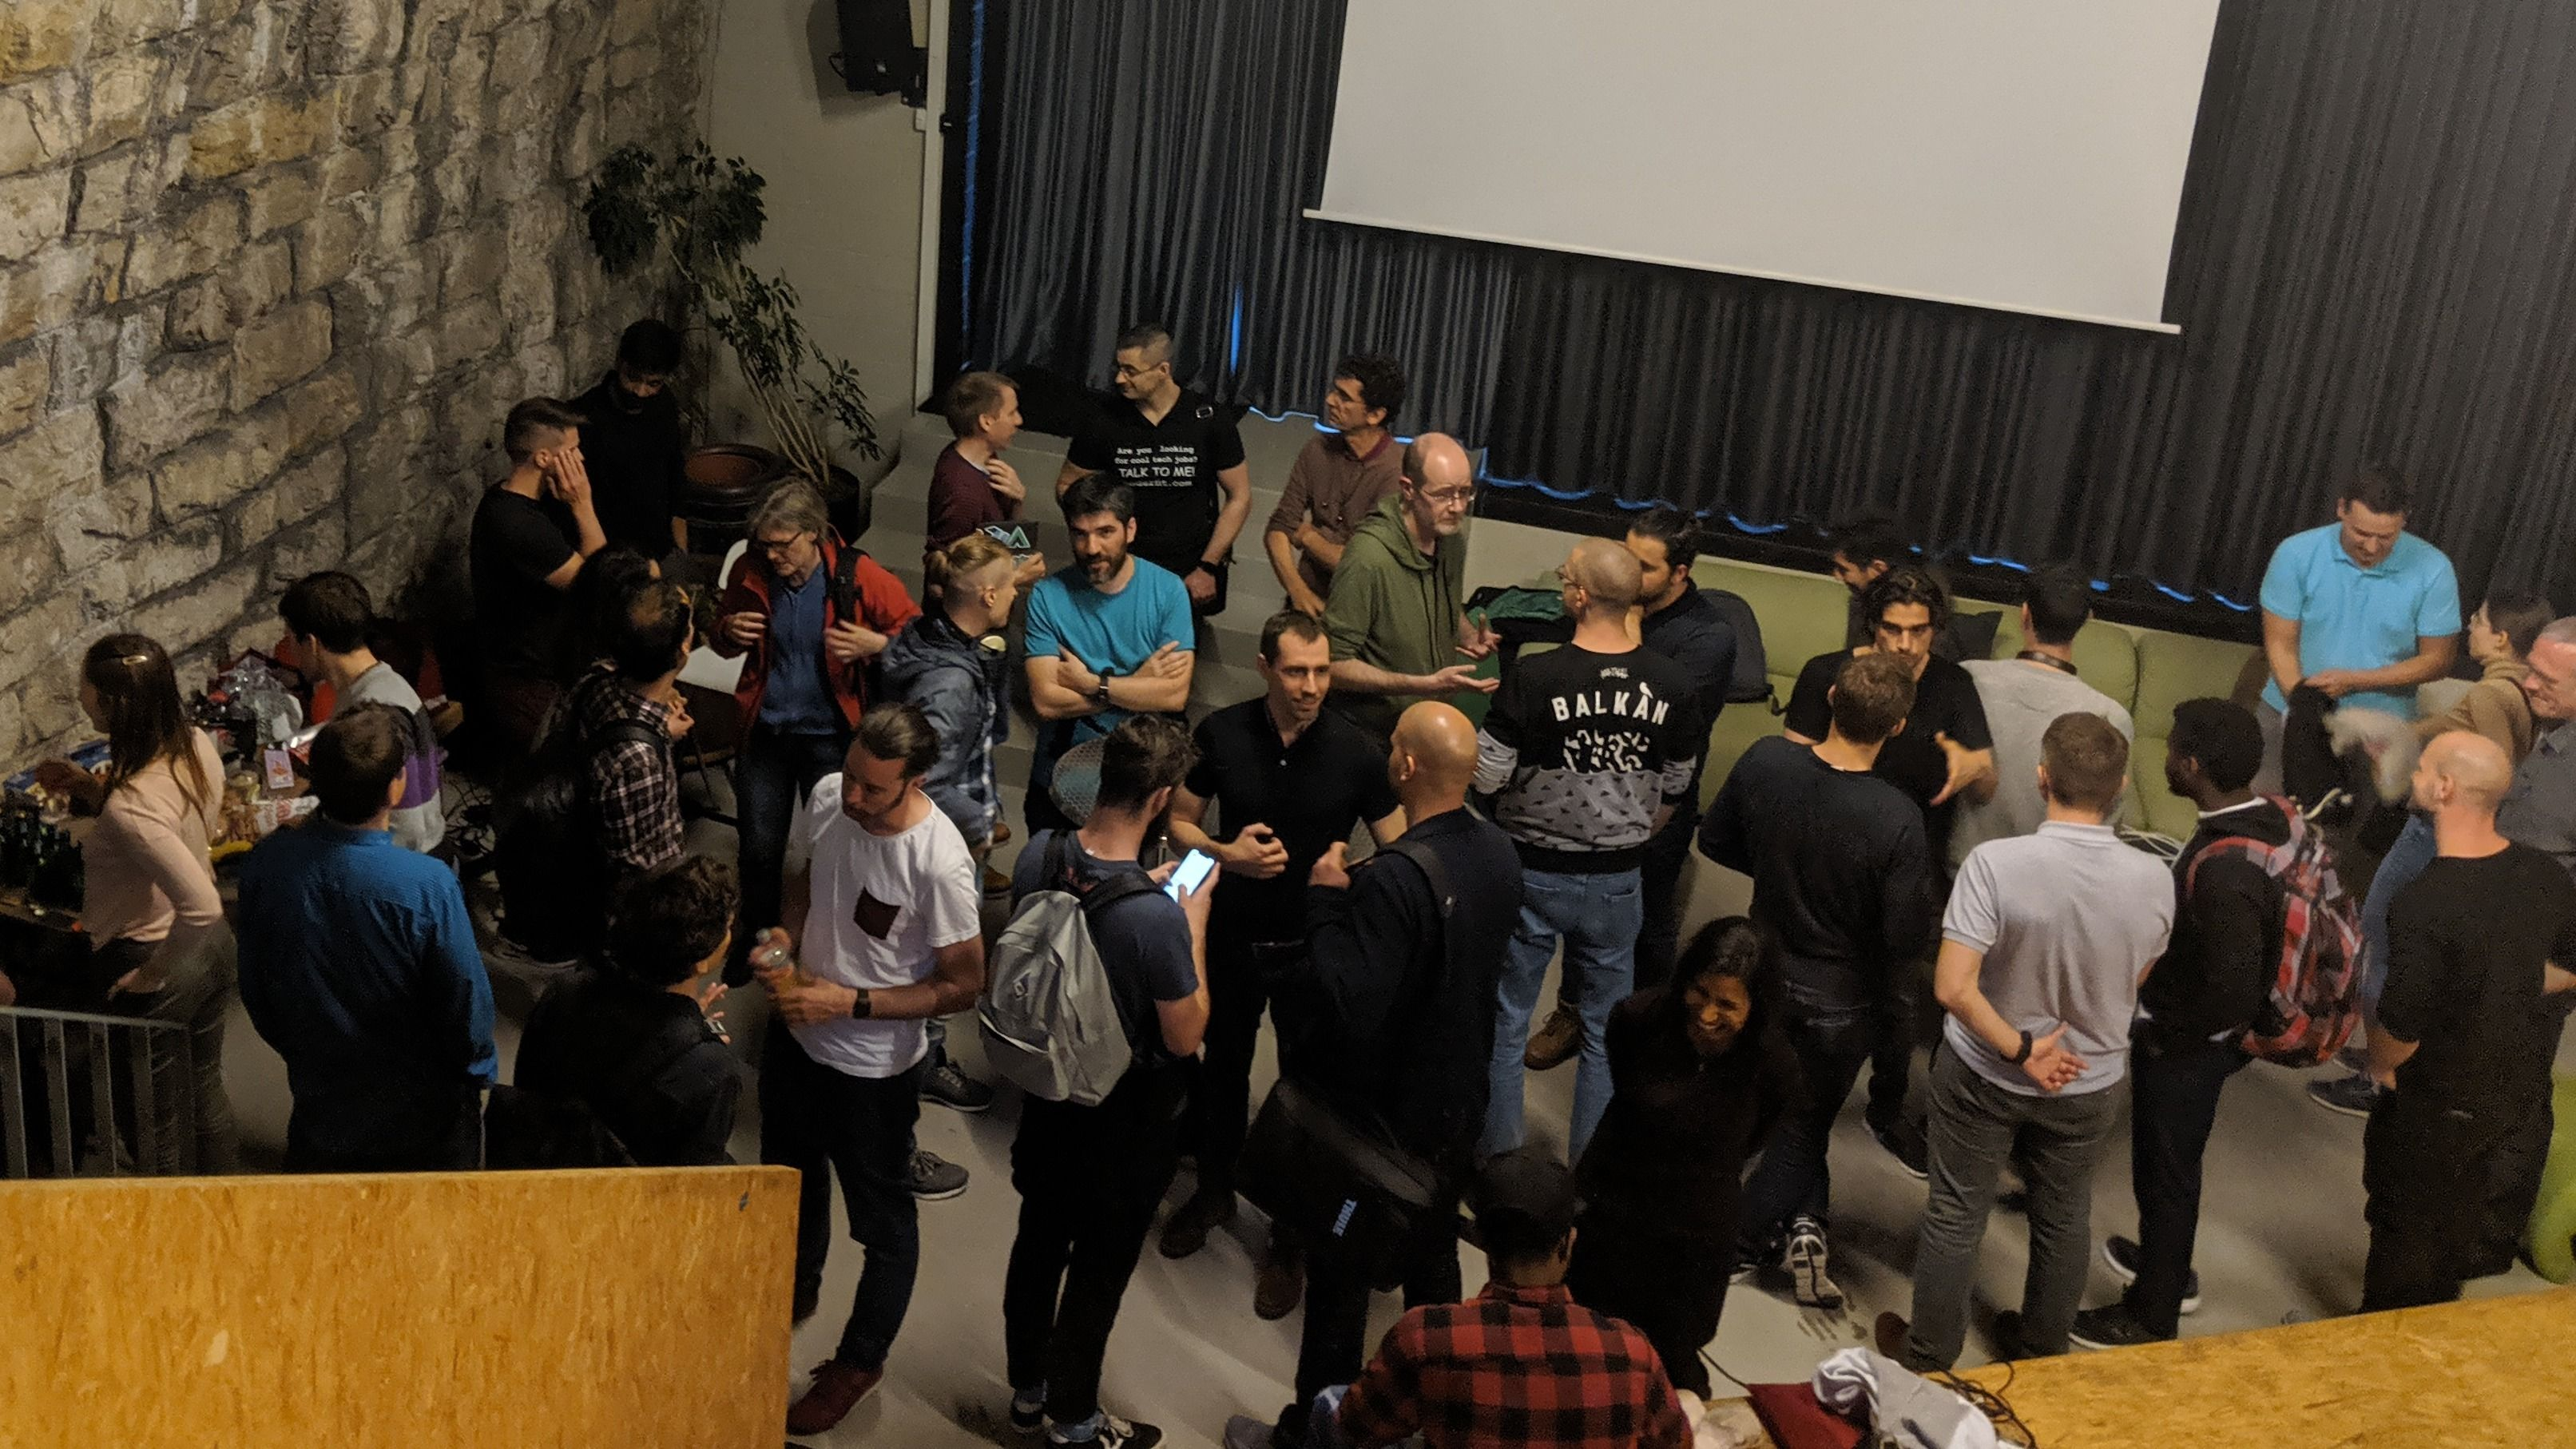 People networking at Web Zurich